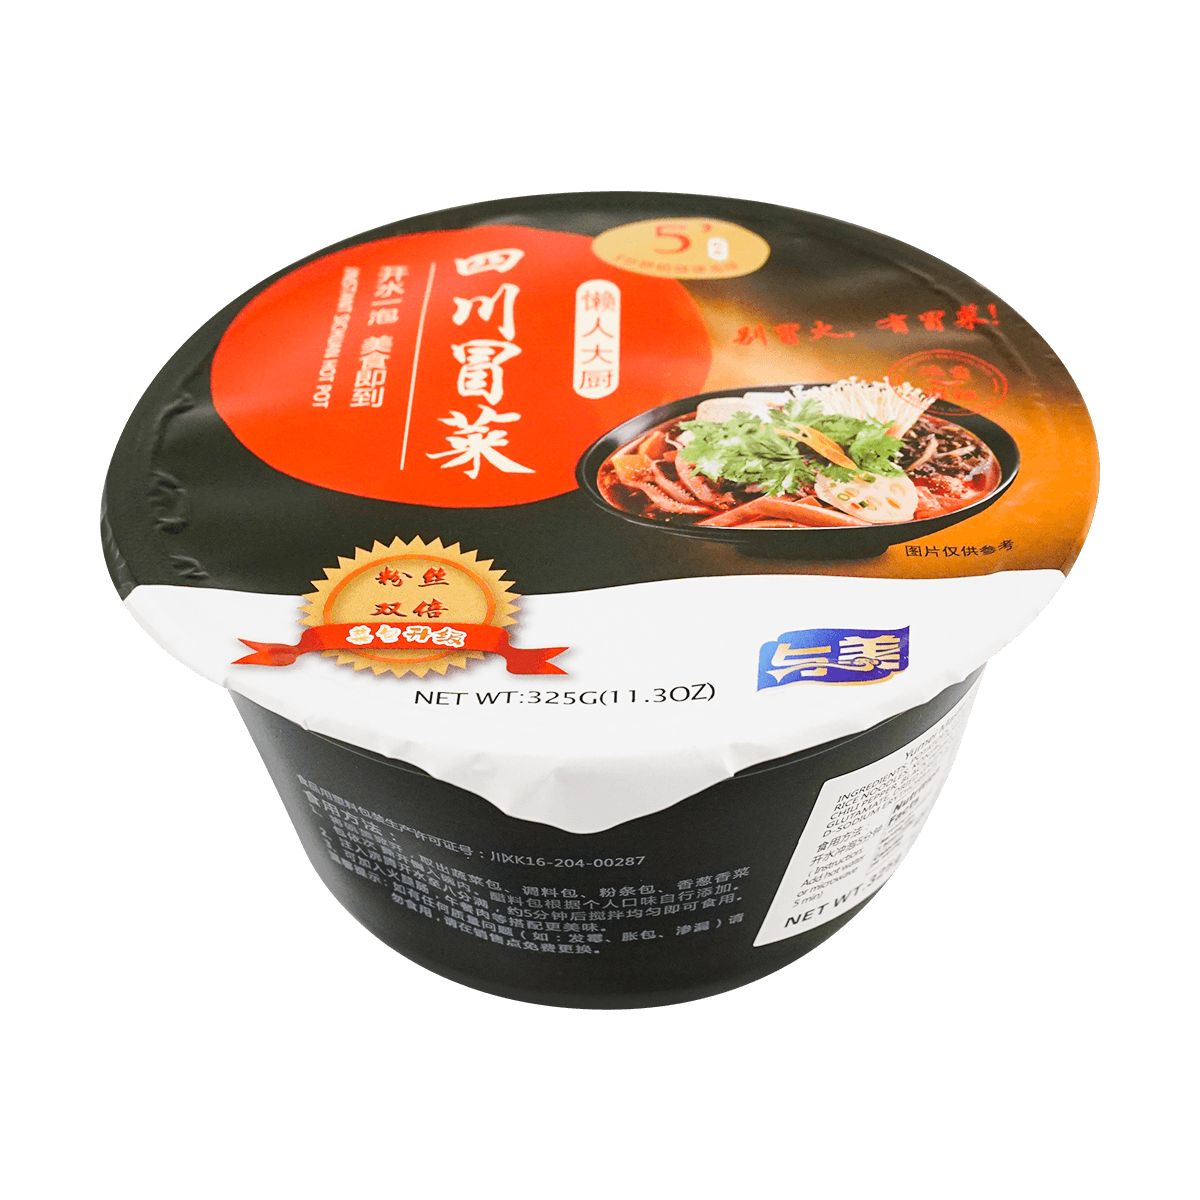 Yamibuy.com:Customer reviews:YUMEI Master Chief Sichuan Instant Hot-pot Spicy 325g